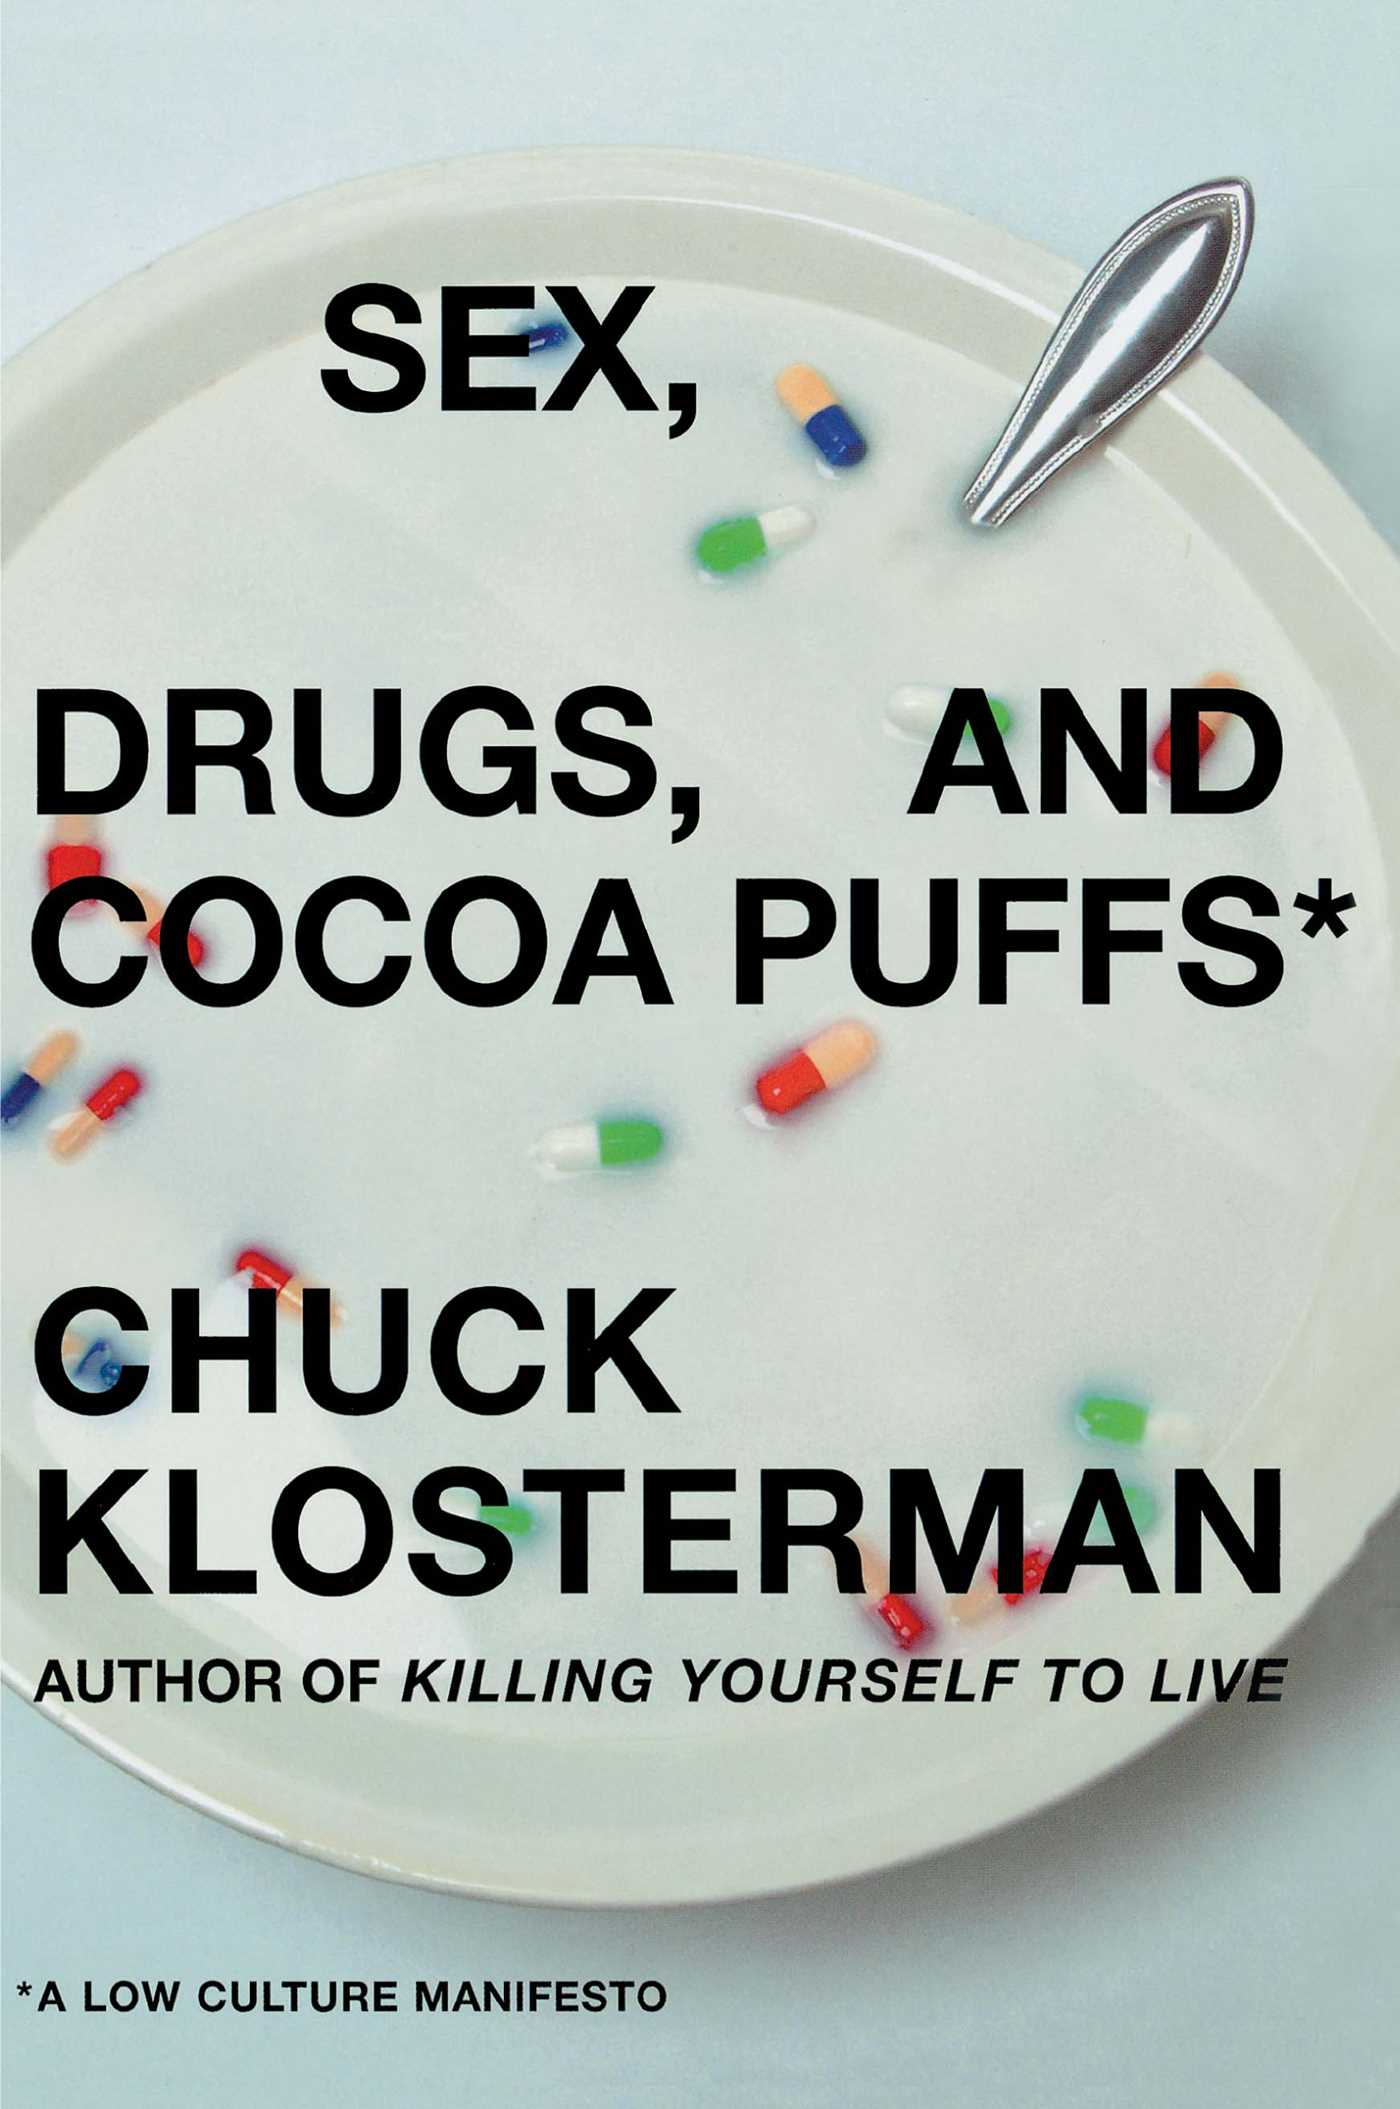 Sex drugs and cocoa puffs 9780743236003 hr